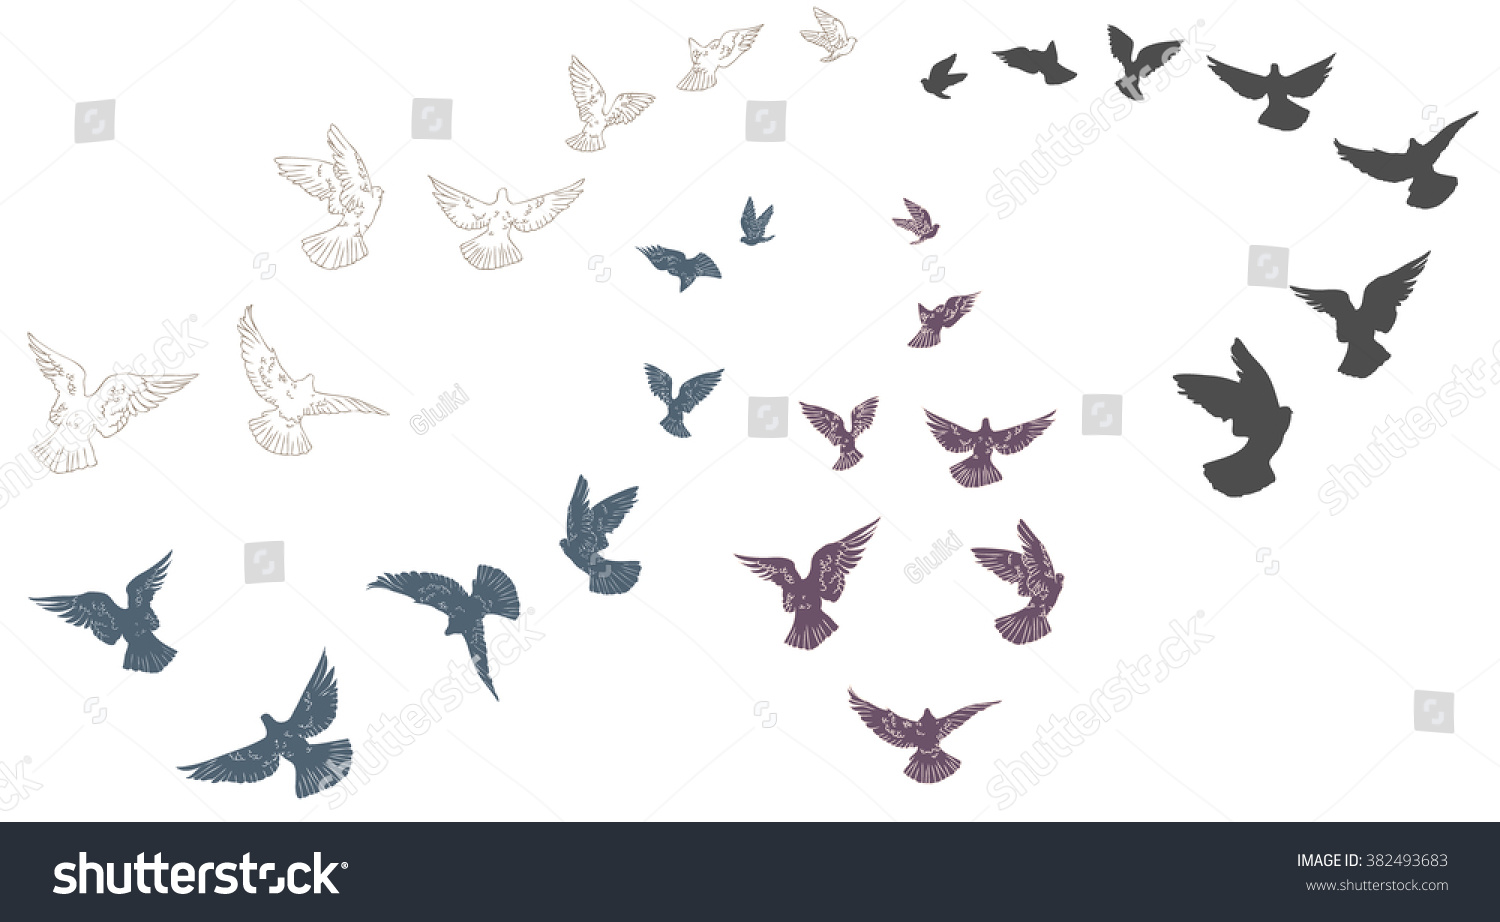 Set of sketches of flying swallows stock vector illustration -  Vectors Illustrations Footage Music Flying Pigeons Flock Of Birds Flying Up Group Flight Of Pigeon